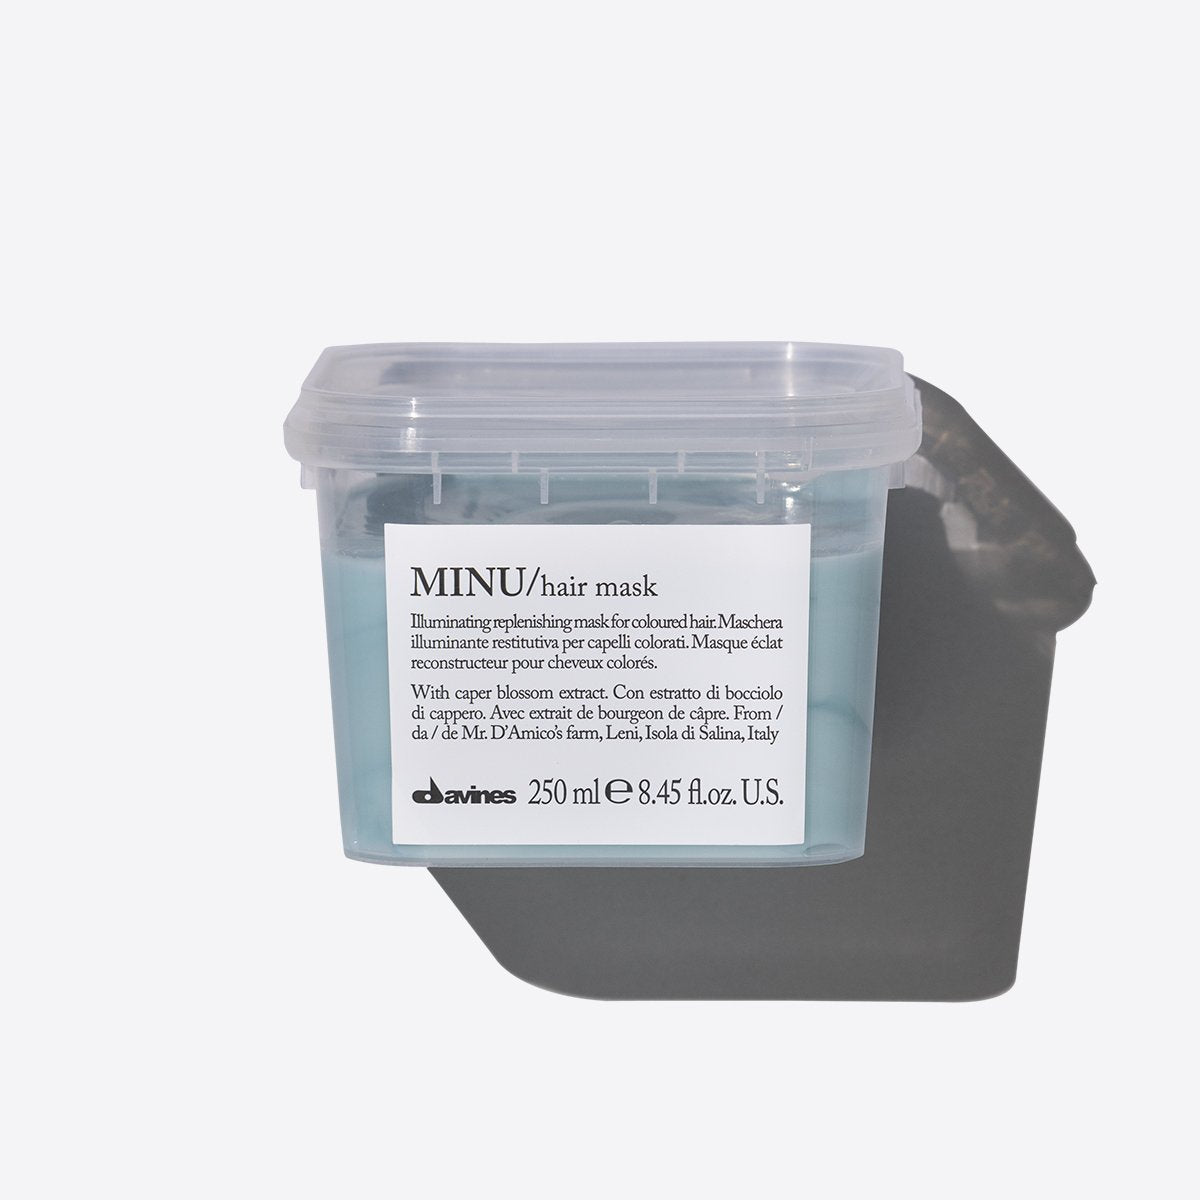 MINU Hair Mask by Davines